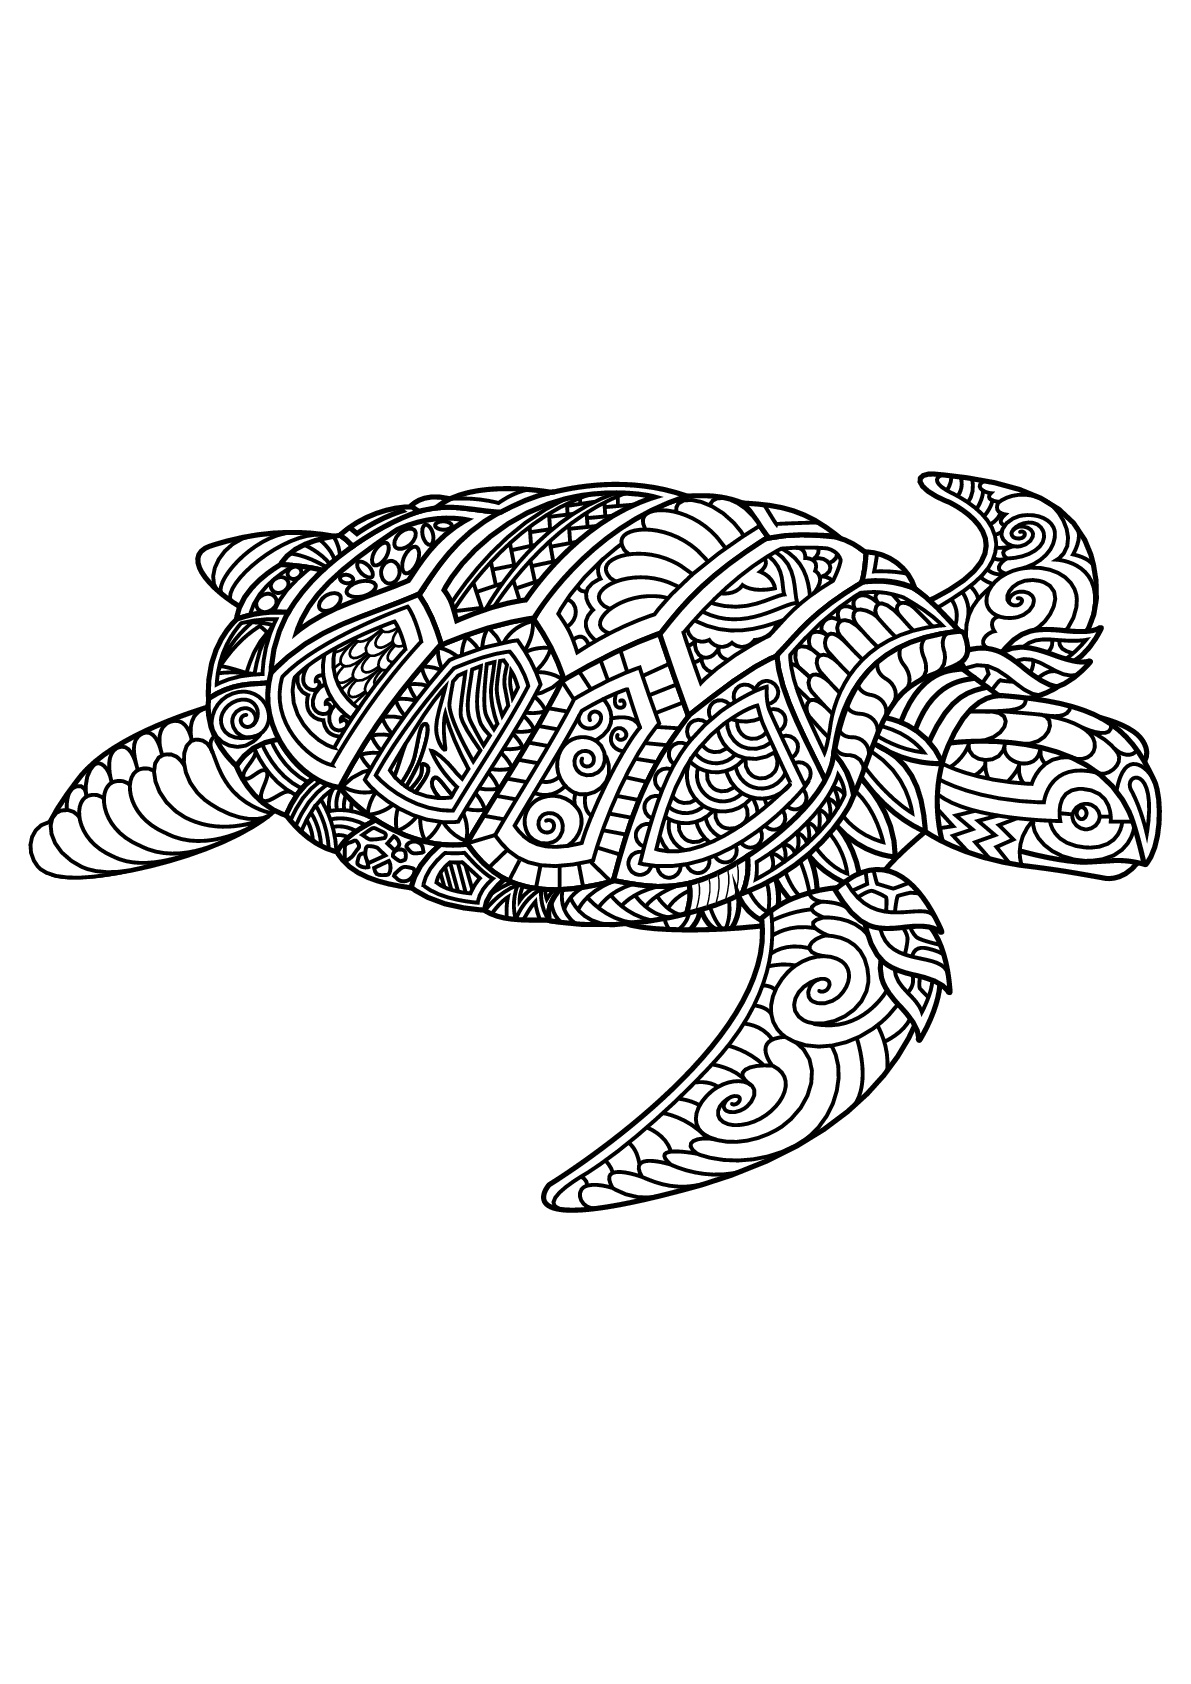 turtle coloring pages for adults adult coloring pages turtle at getdrawings free download turtle adults for pages coloring